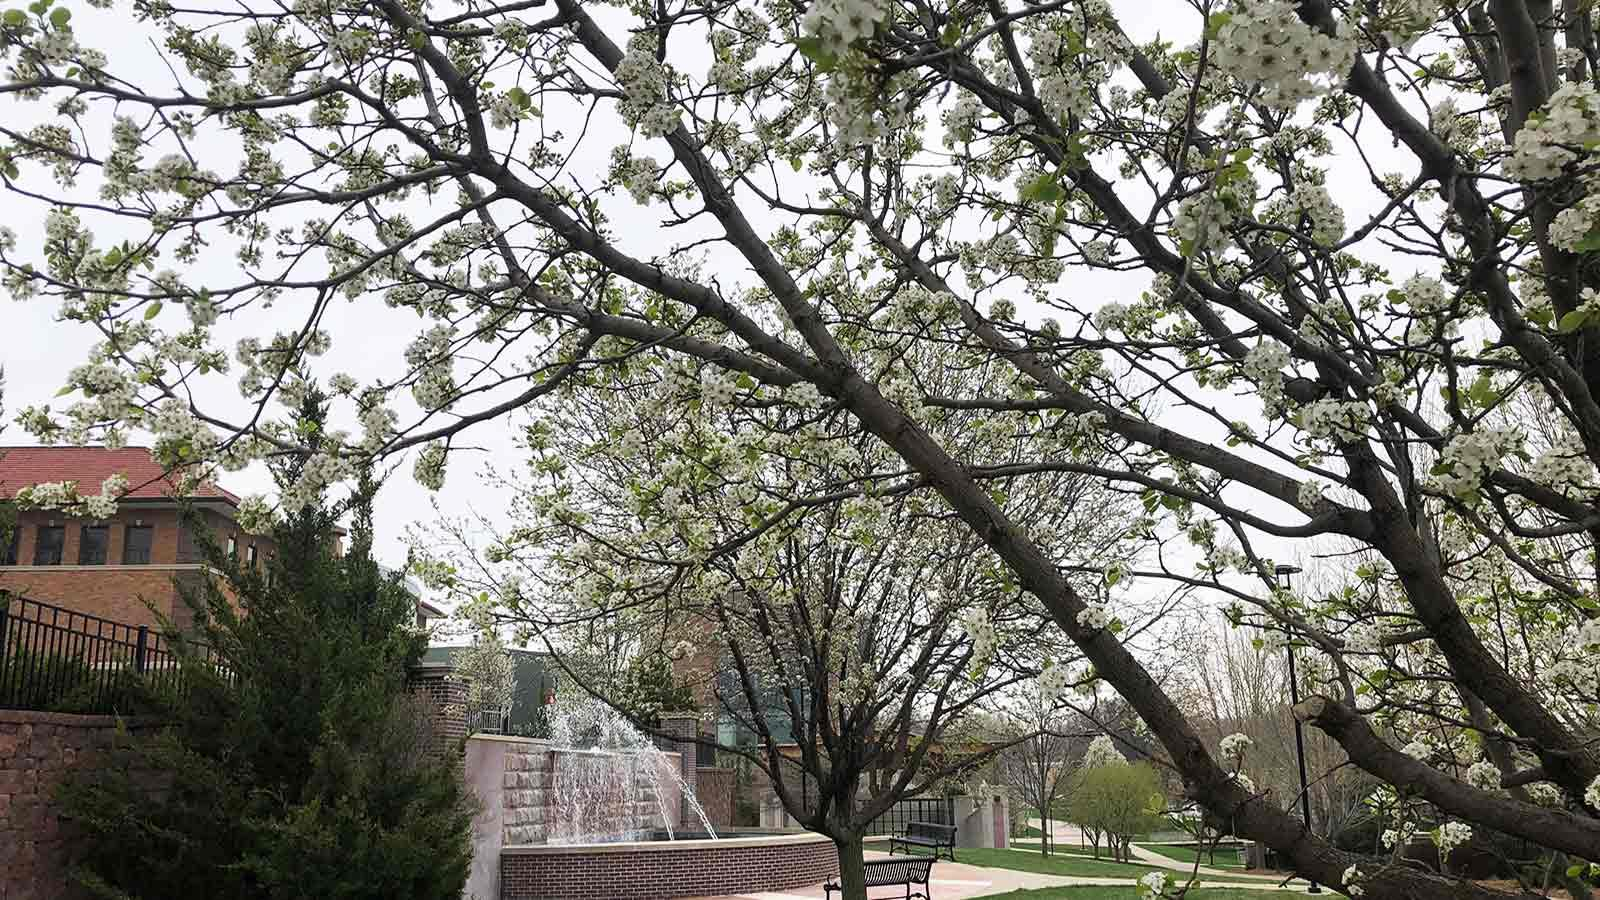 Flowering trees in bloom around the fountain at Morningside University.